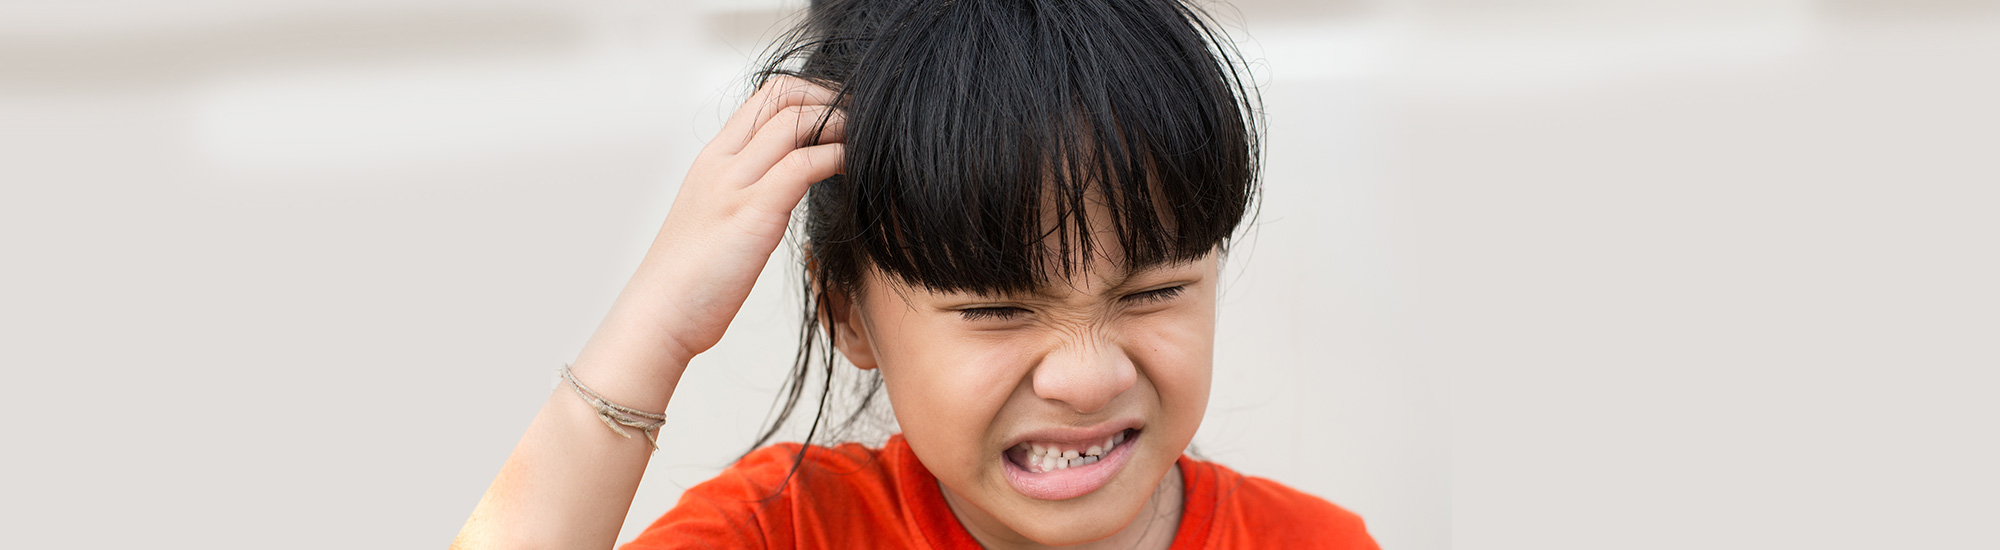 Ayurvedic treatment for Head lice